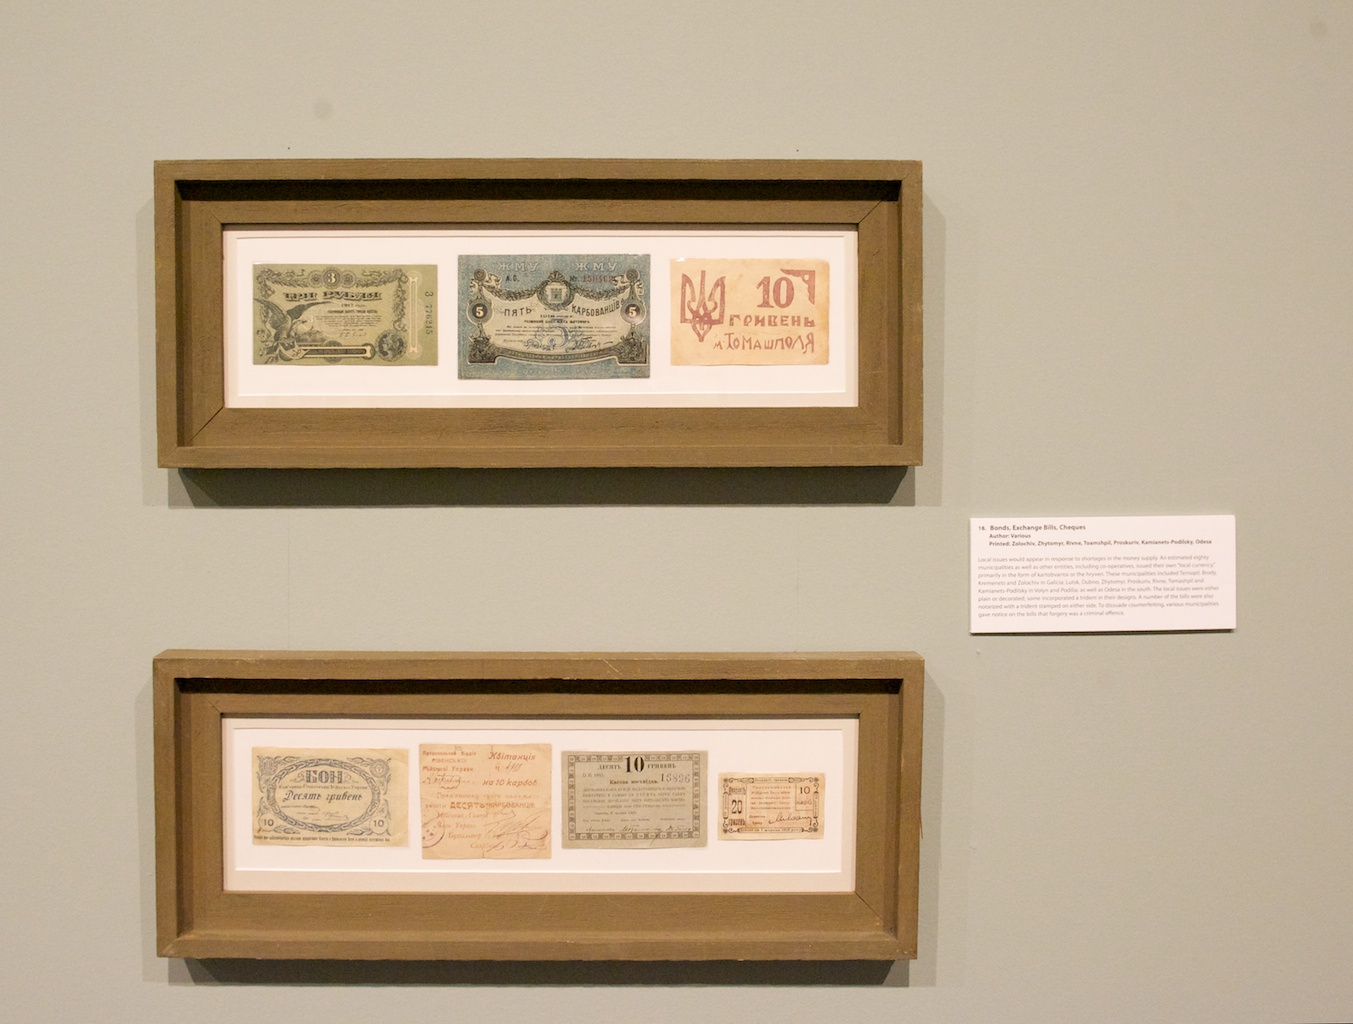 Money, Sovereignty and Power: The Paper Currency of Revolutionary Ukraine, 1917-1920 (Installation view). January 15, 2015 – April 4, 2015. Curated by Bohdan Kordan, Organized by The Prairie Centre for the Study of Ukrainian Heritage at the University of Saskatchewan in association with the Ukrainian Museum of Canada and Nickle Galleries.  Photo:  Dave Brown, LCR Photo Services.